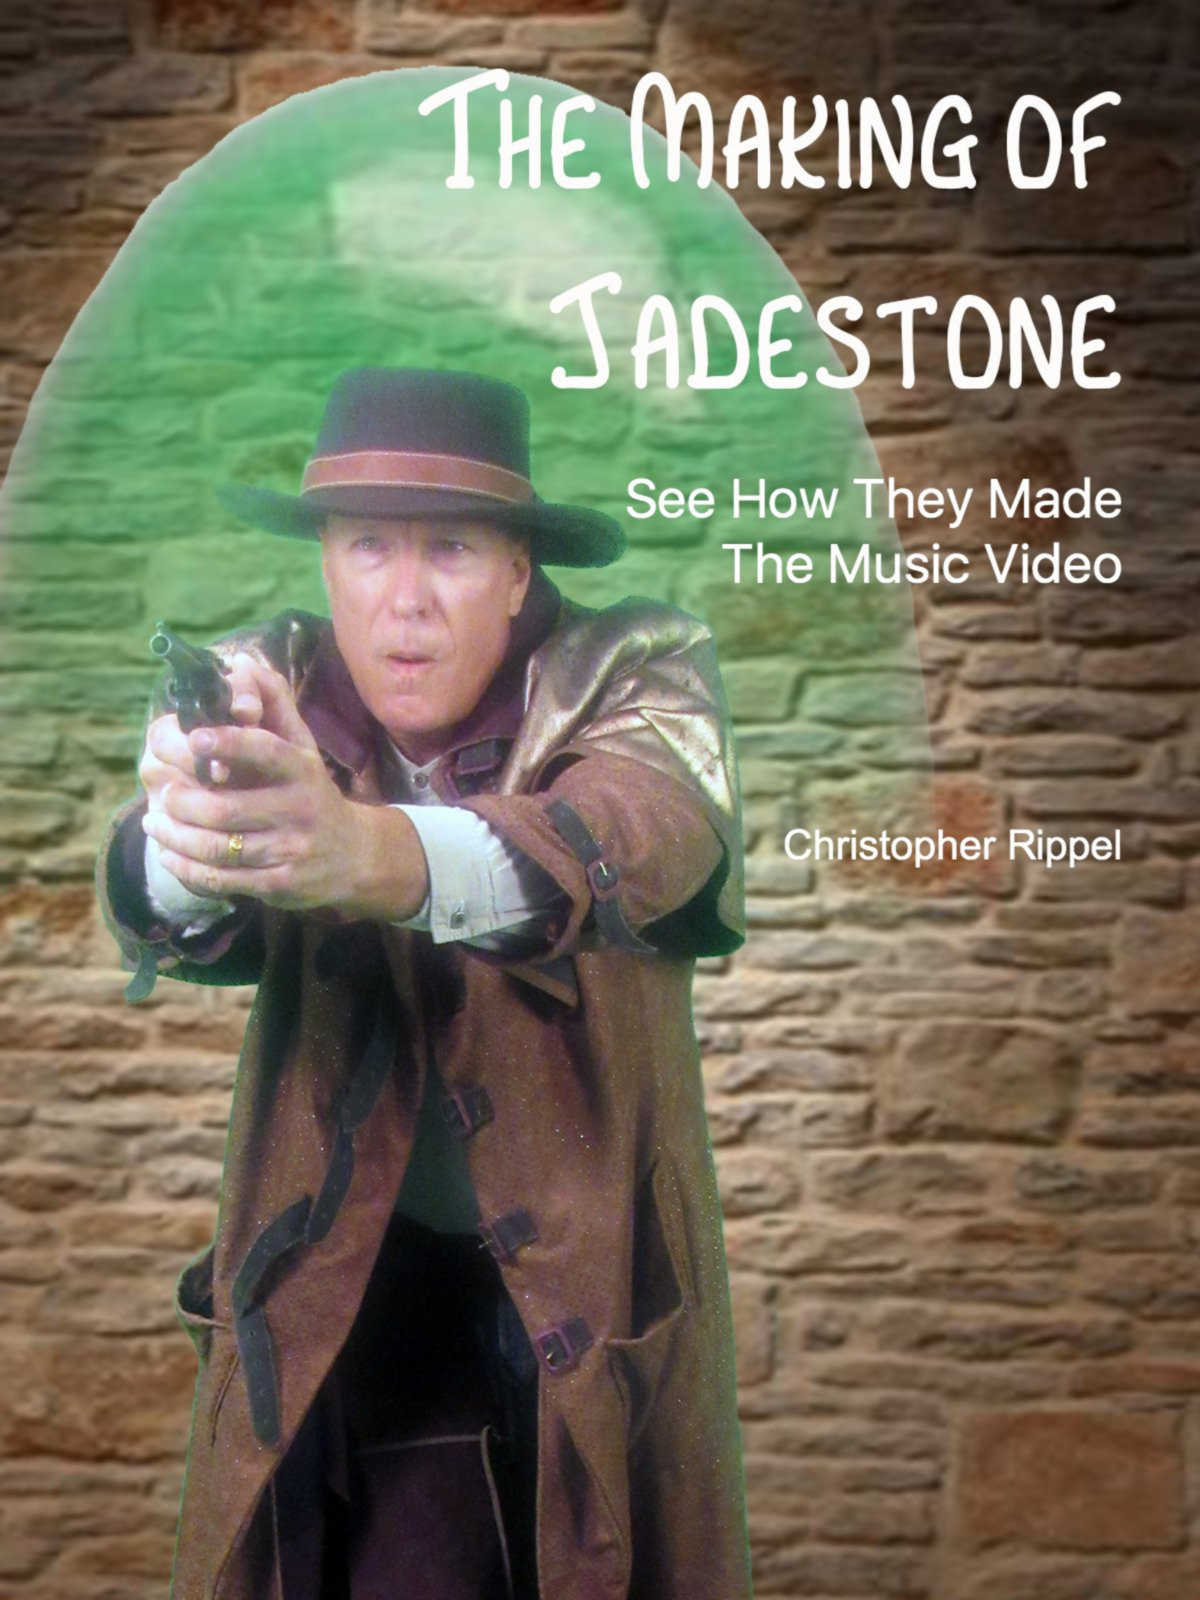 The Making of Jadestone